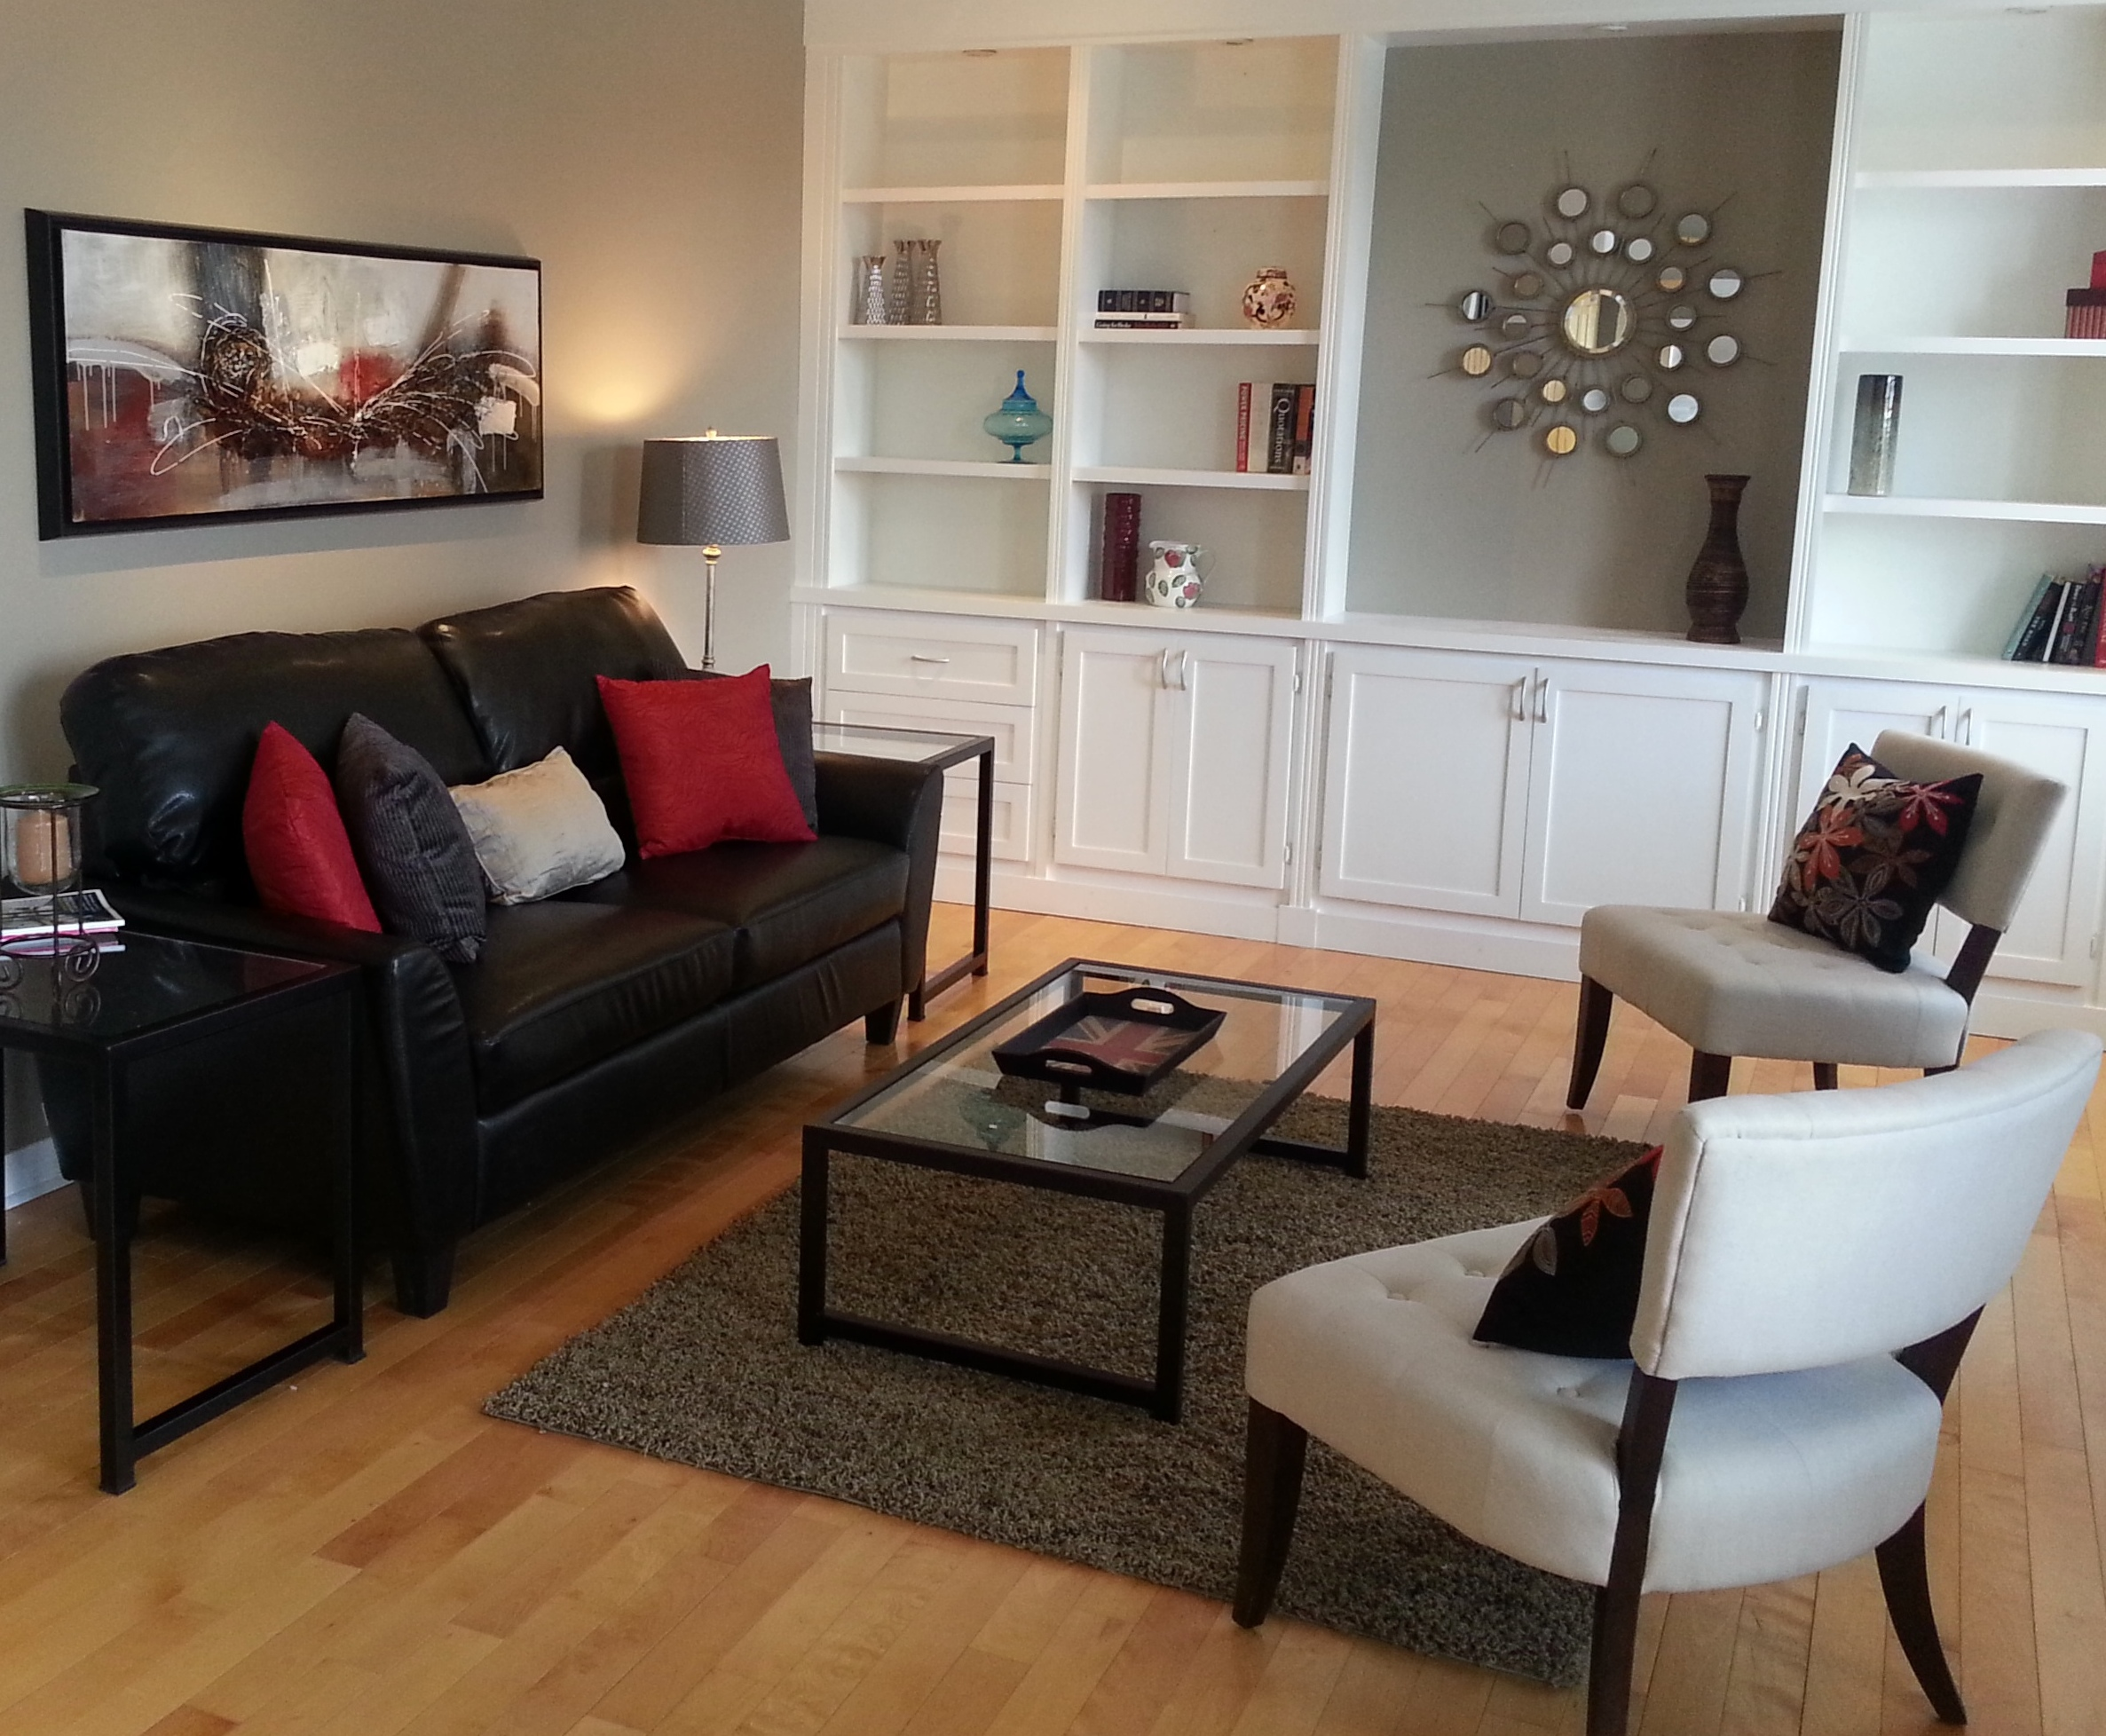 Furniture Rental For Staging Home Staging And Furniture